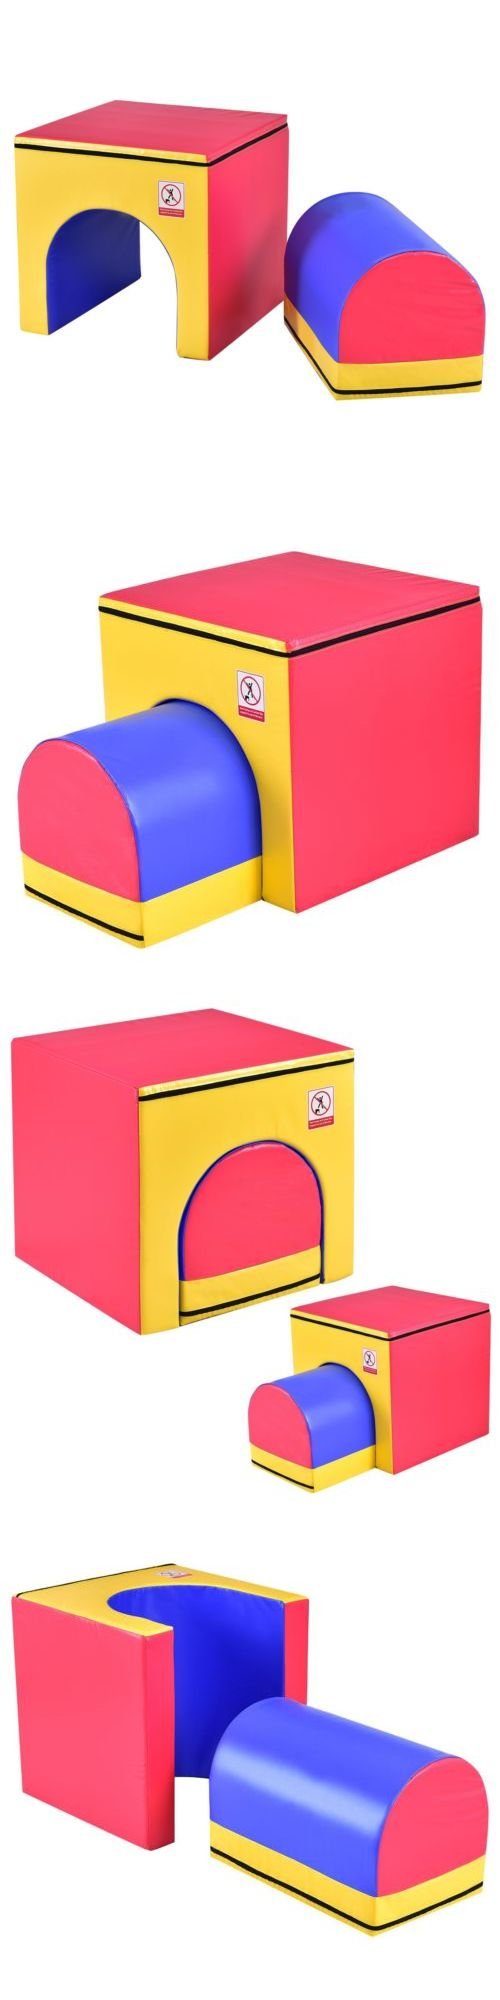 Equipment 79793: Home 2 In 1 Mailbox Trainer Tumbling Aid Gymnastics Equipment Sports Jumping Box -> BUY IT NOW ONLY: $91.38 on eBay!